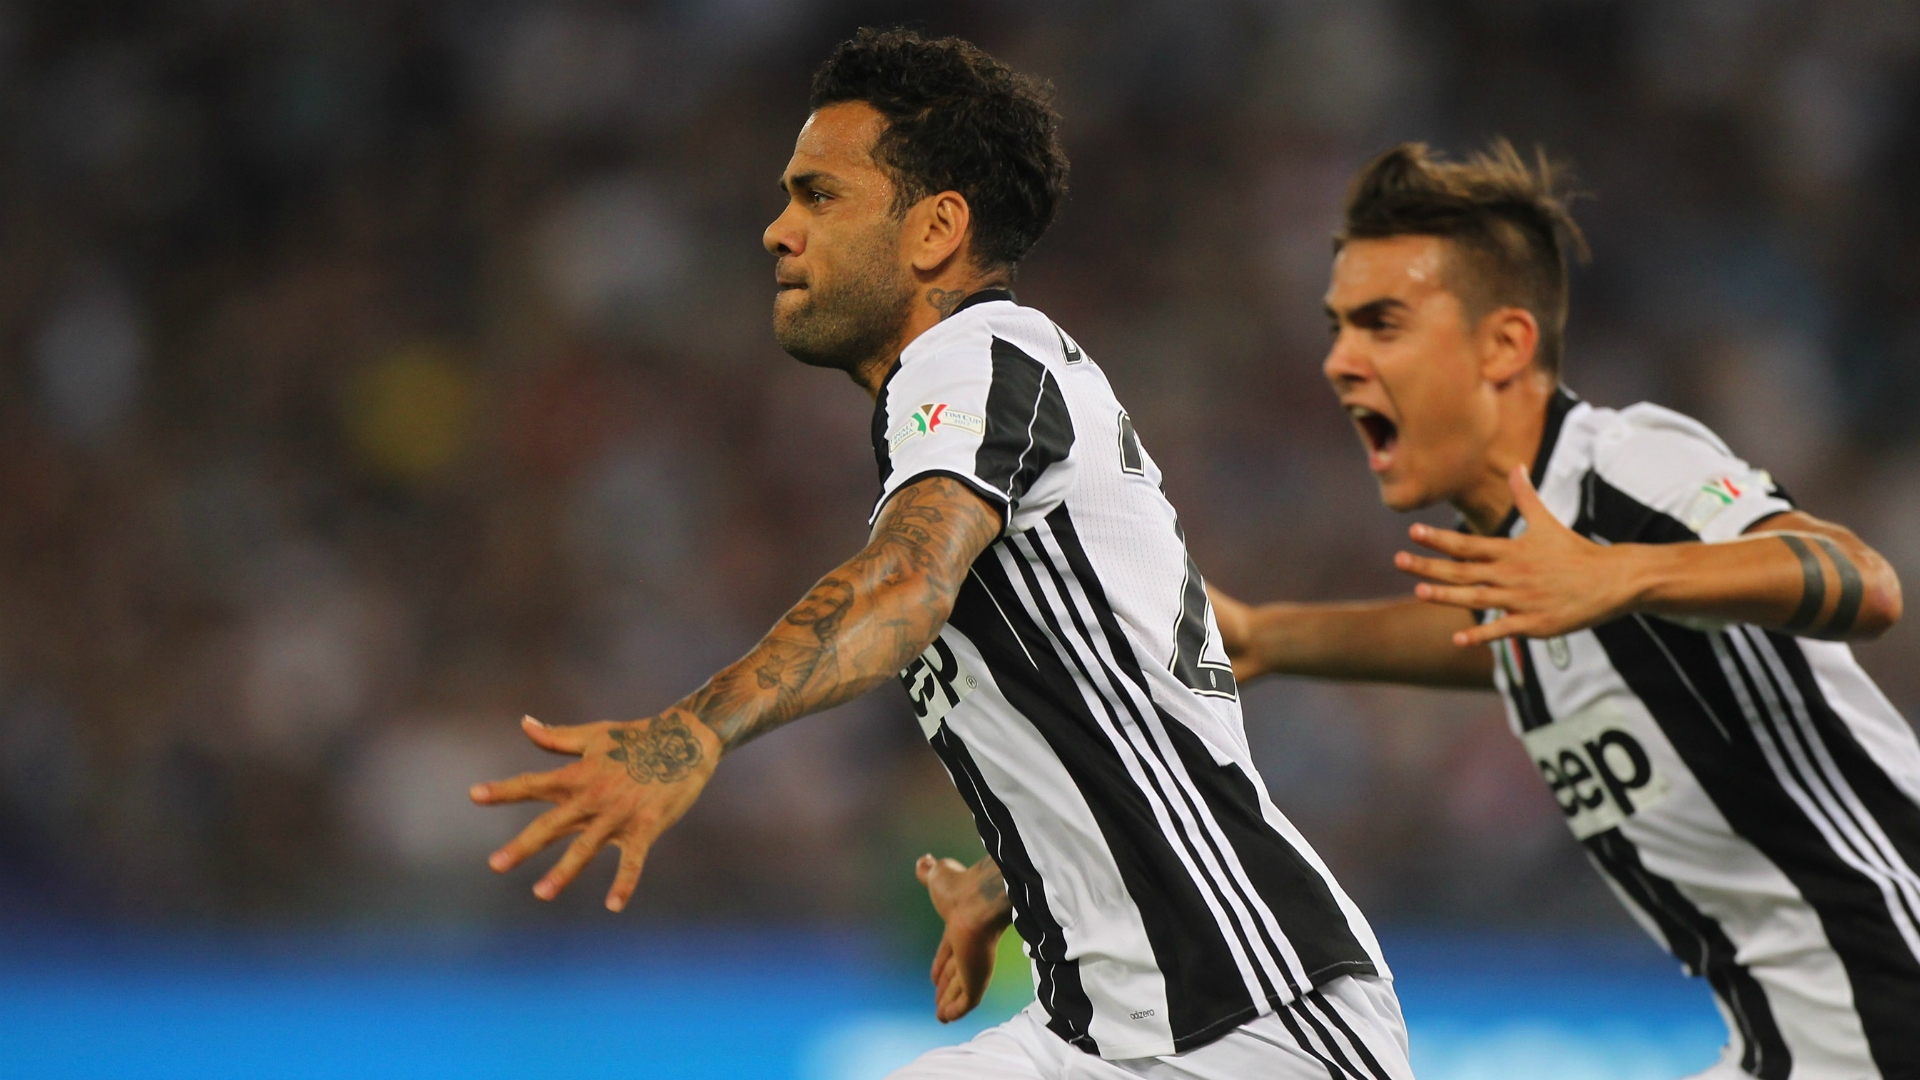 Alves thanked Juventus for the opportunity to play for the club.